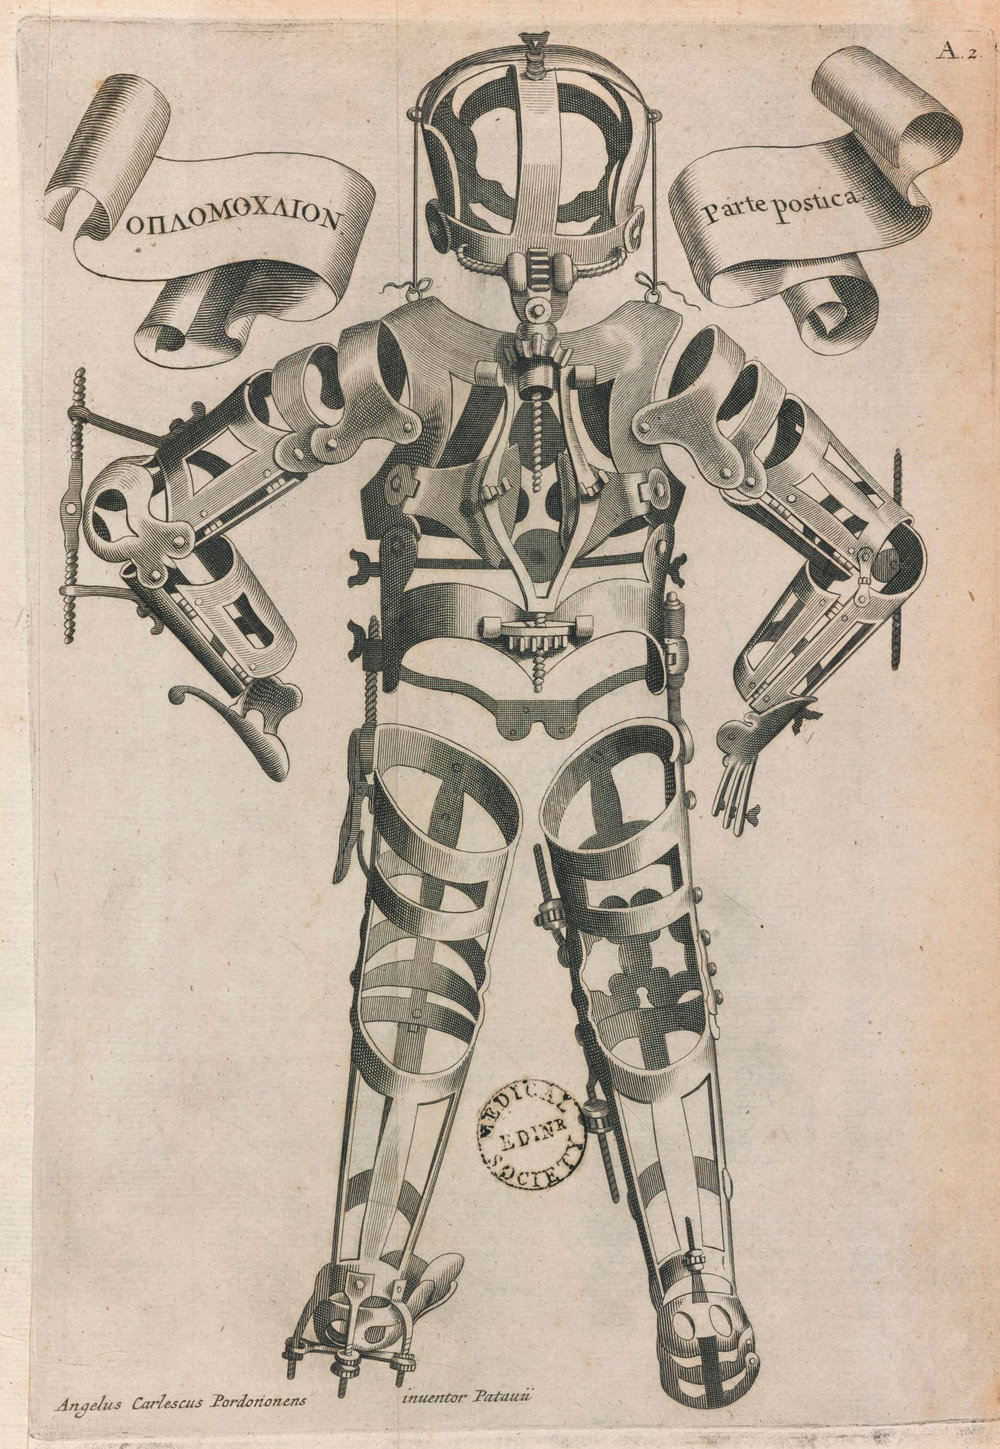 Articulated manikin from 'Opera Chirurgica', book, Padua, Italy, 1723